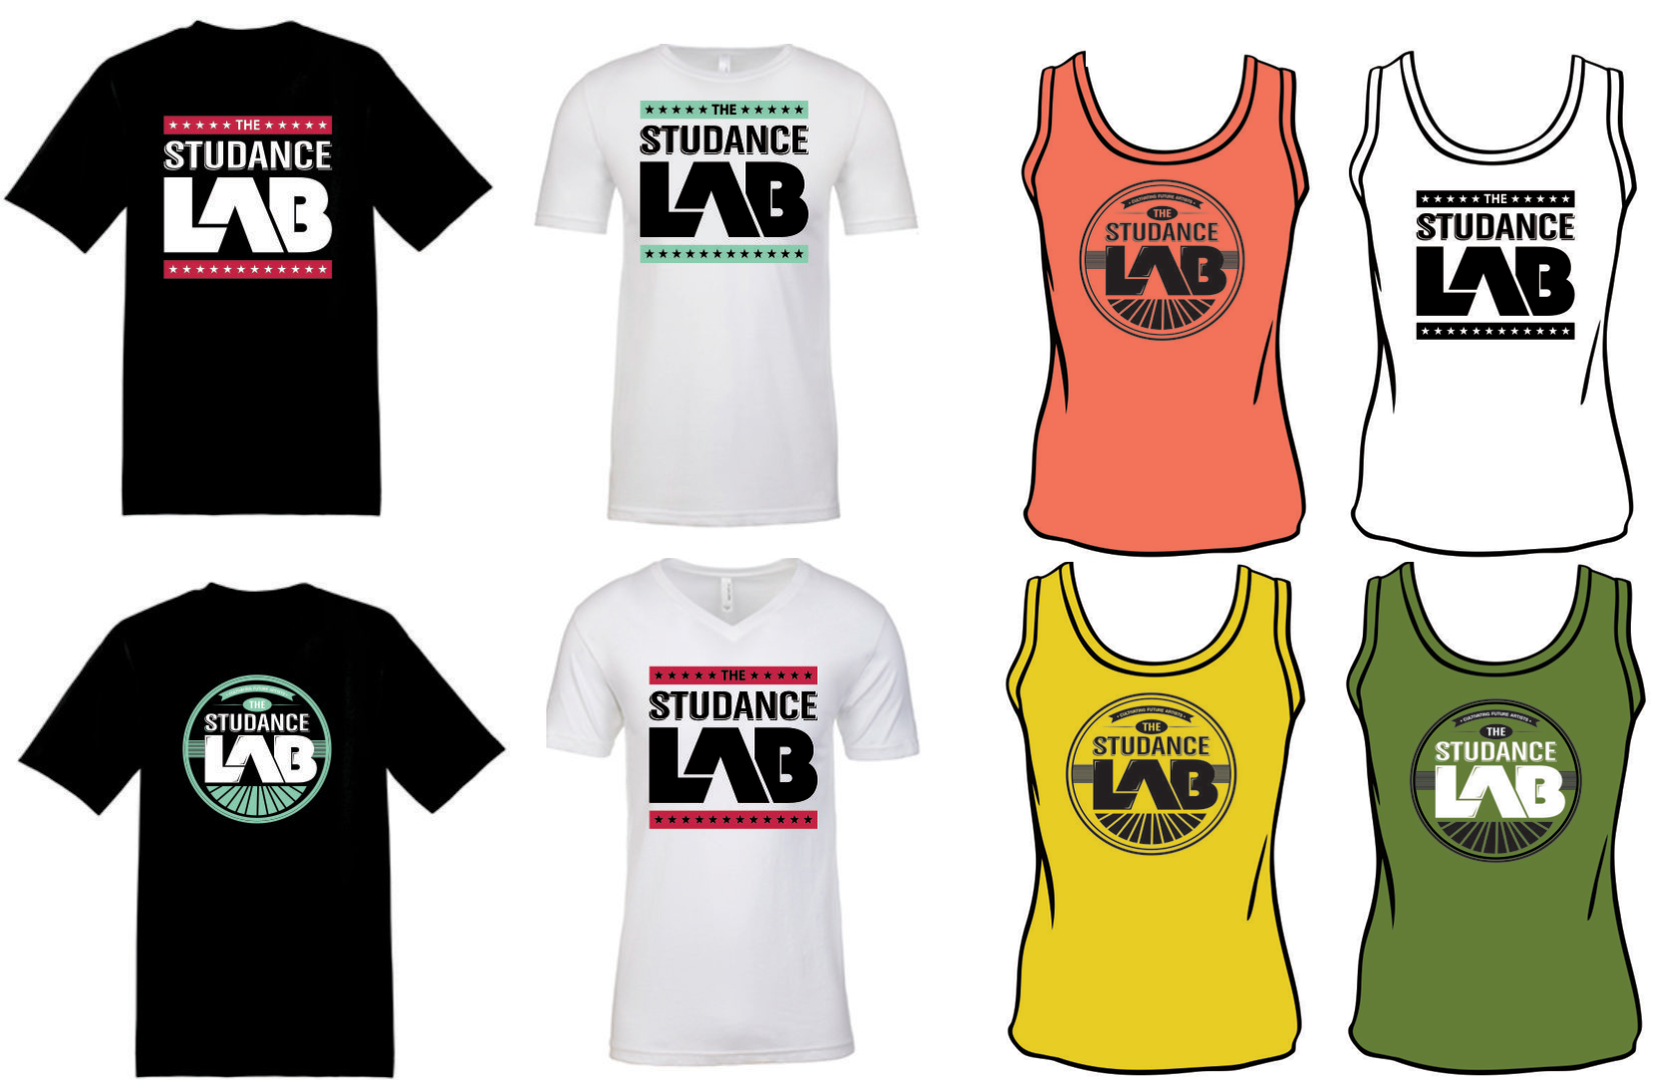 Studance Lab Shirts